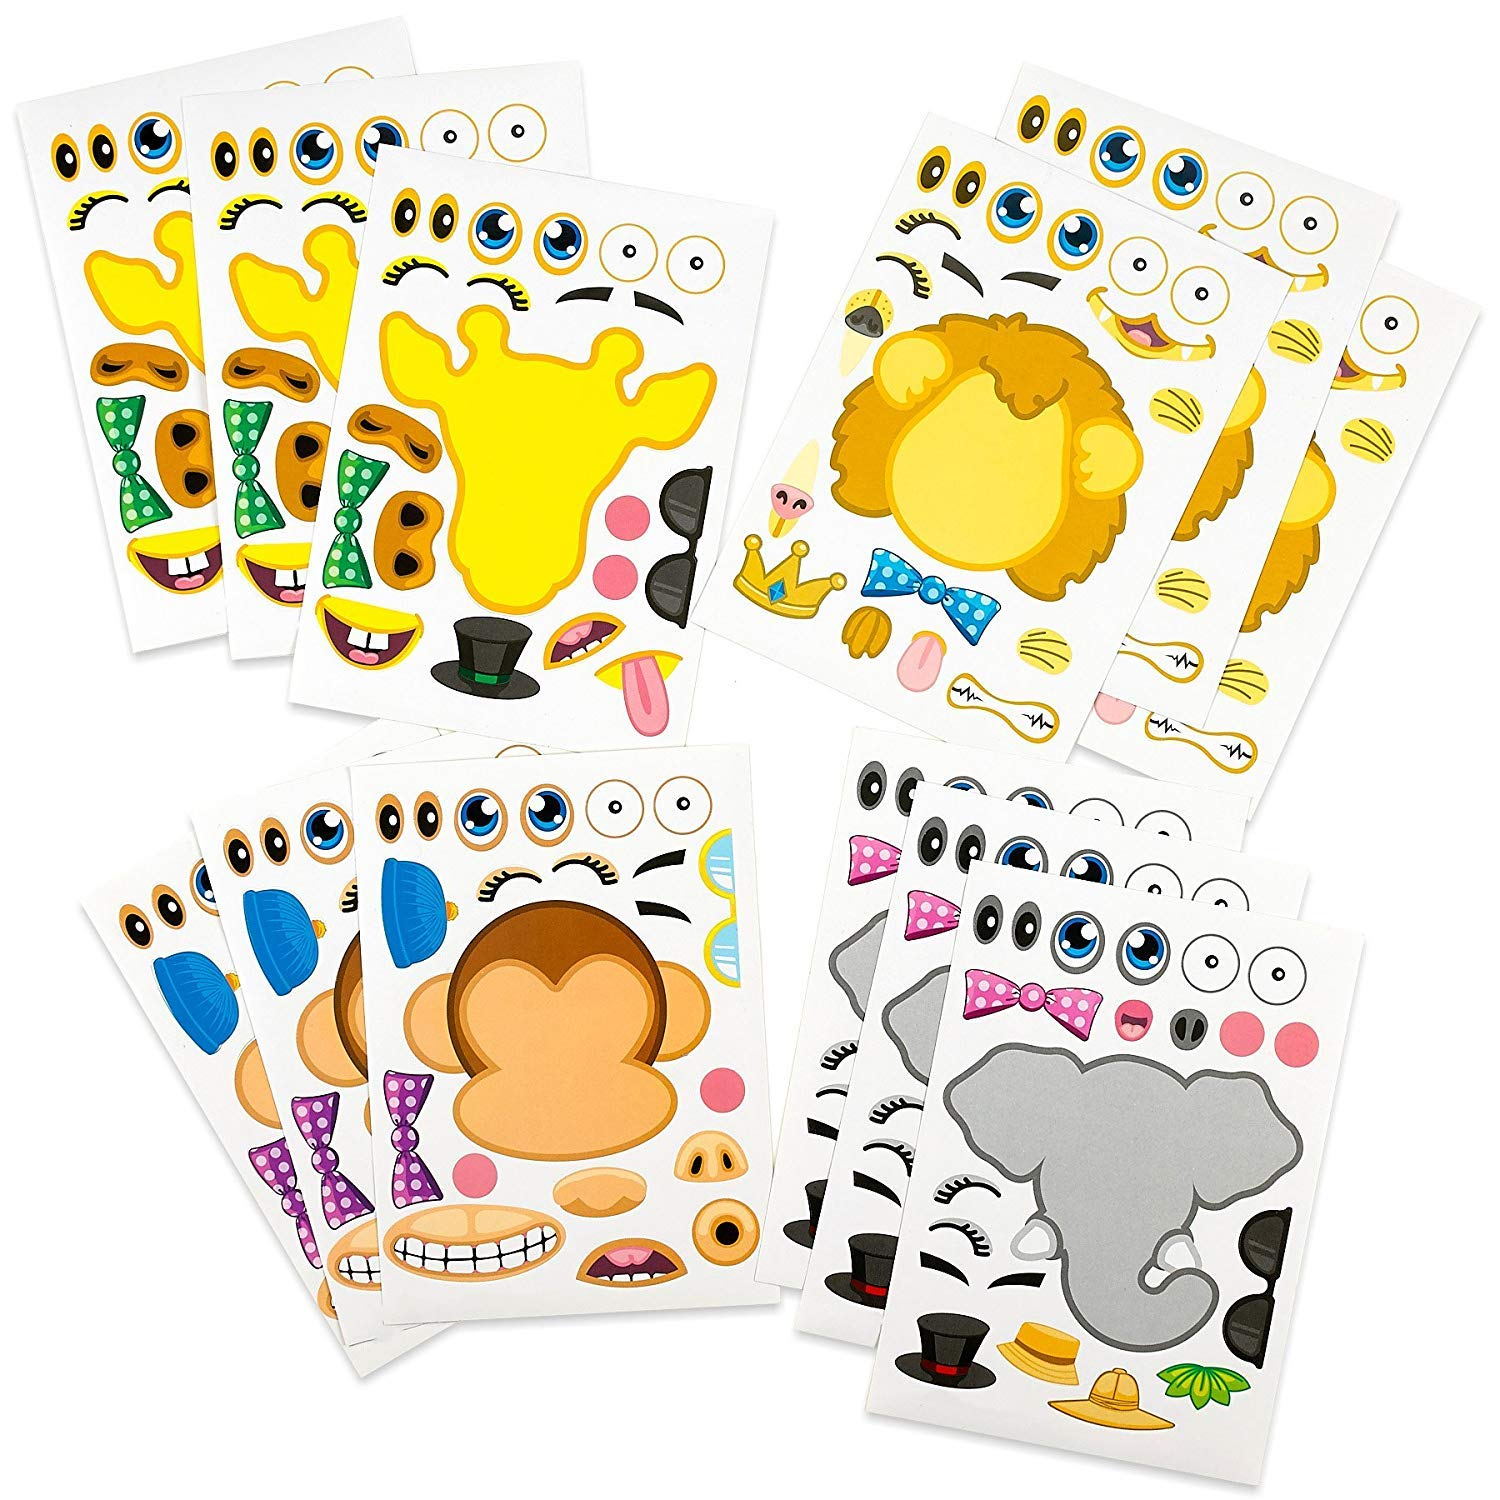 Parties Crafts Gifts Daycare Birthdays School Kicko Make-a-Zoo Animal Sticker Sheets -12 Pack for Kids Party Favors Arts Etc.